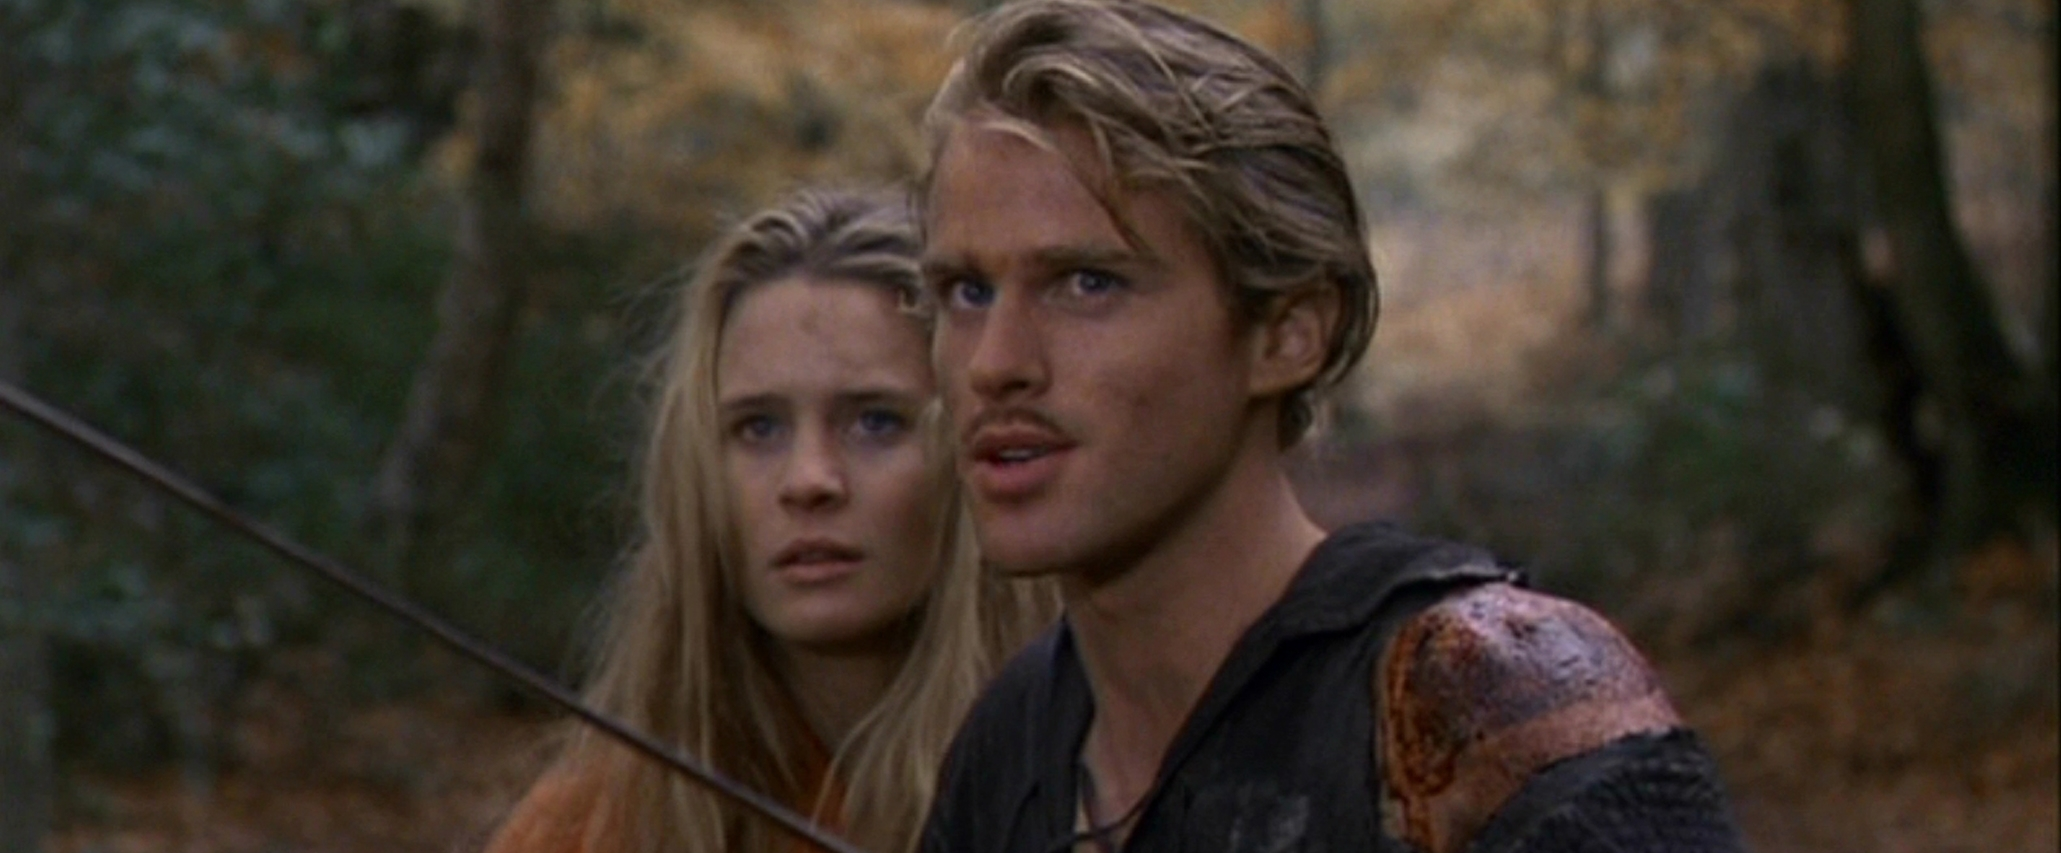 the princess bride essay business truth on the market playing  cabaret cinema where movies and martinis mix the princess bride